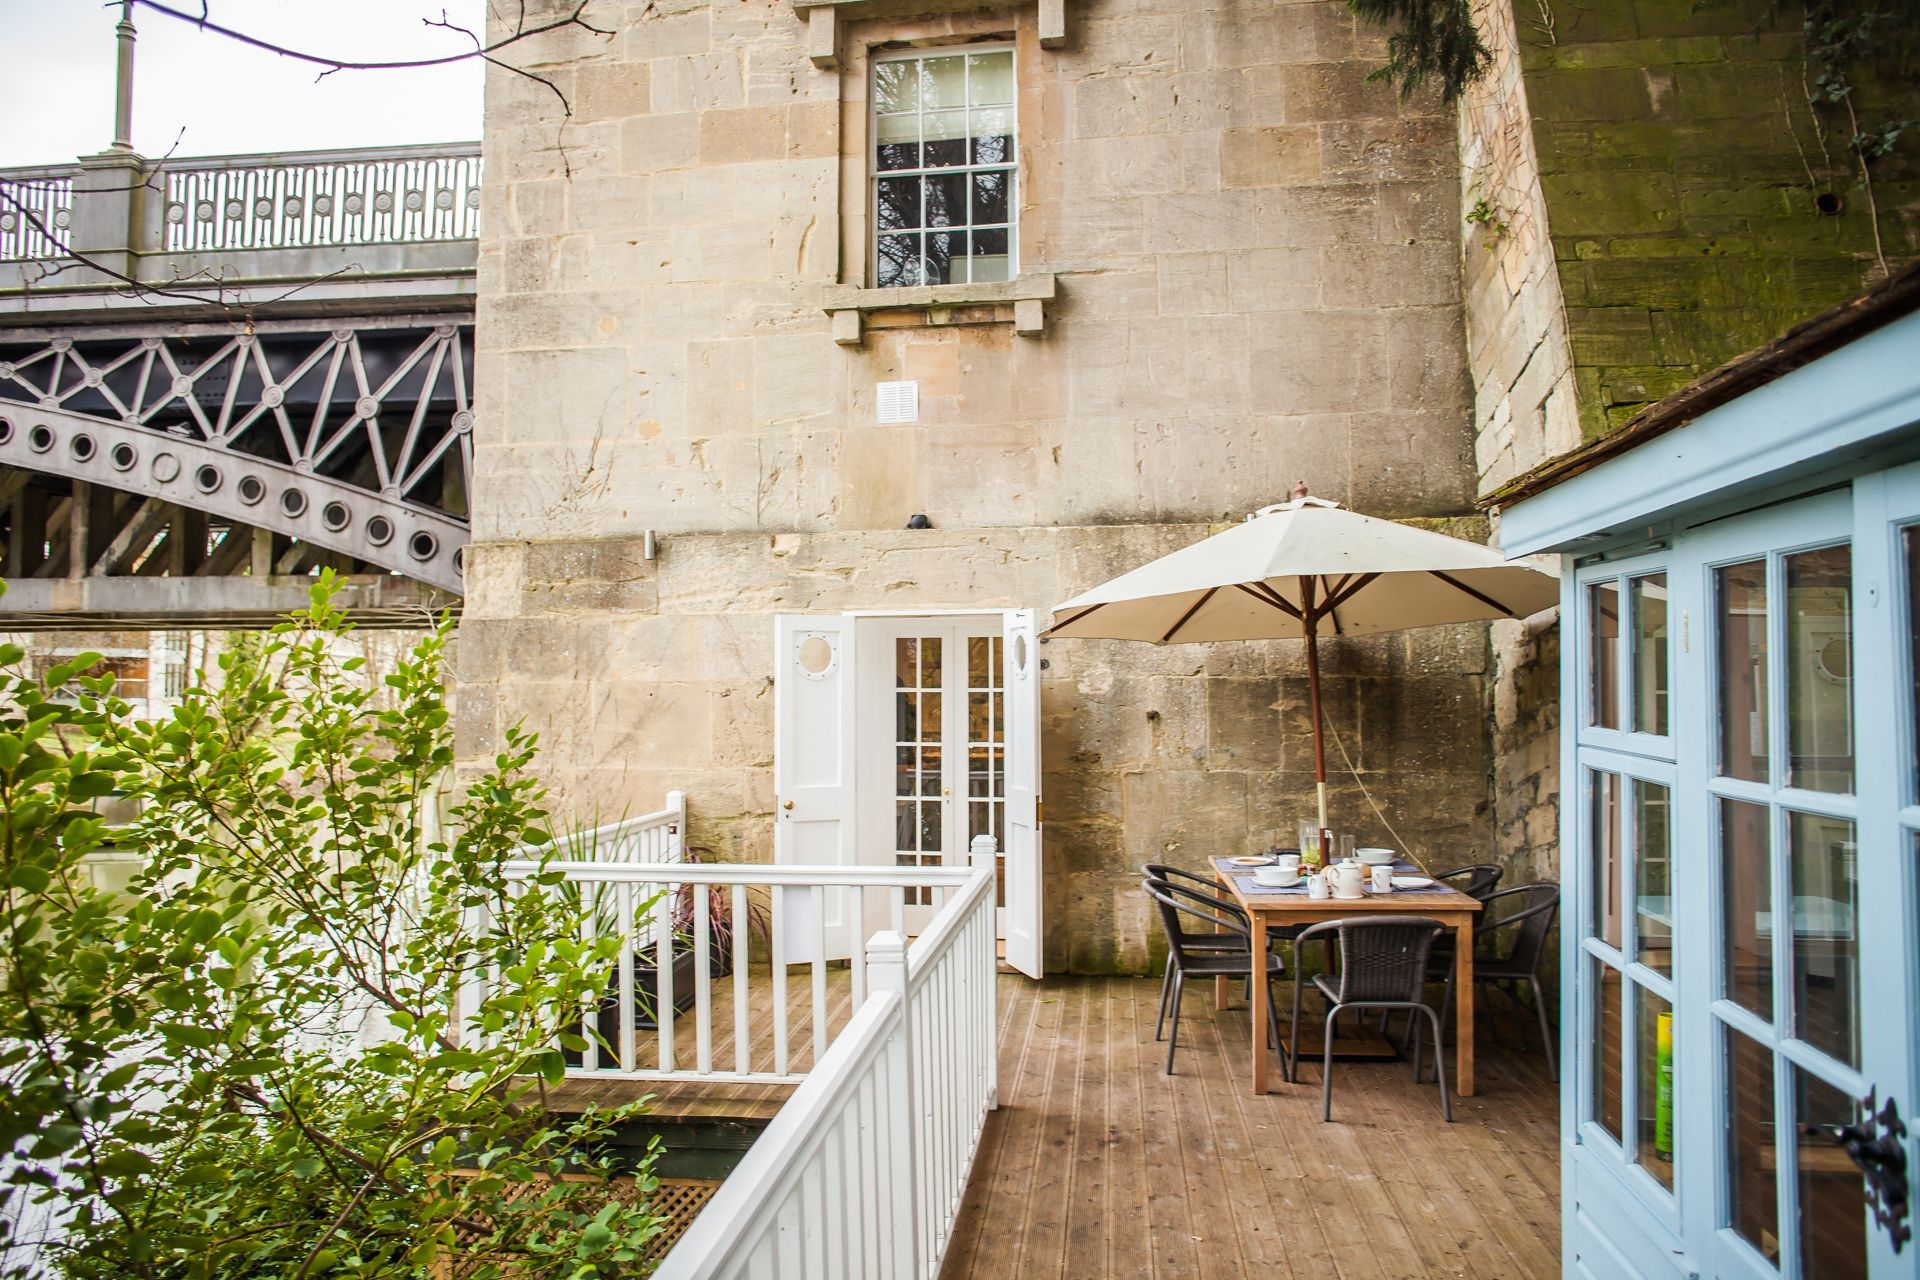 Win a stay at one of our beautiful Bath rental properties